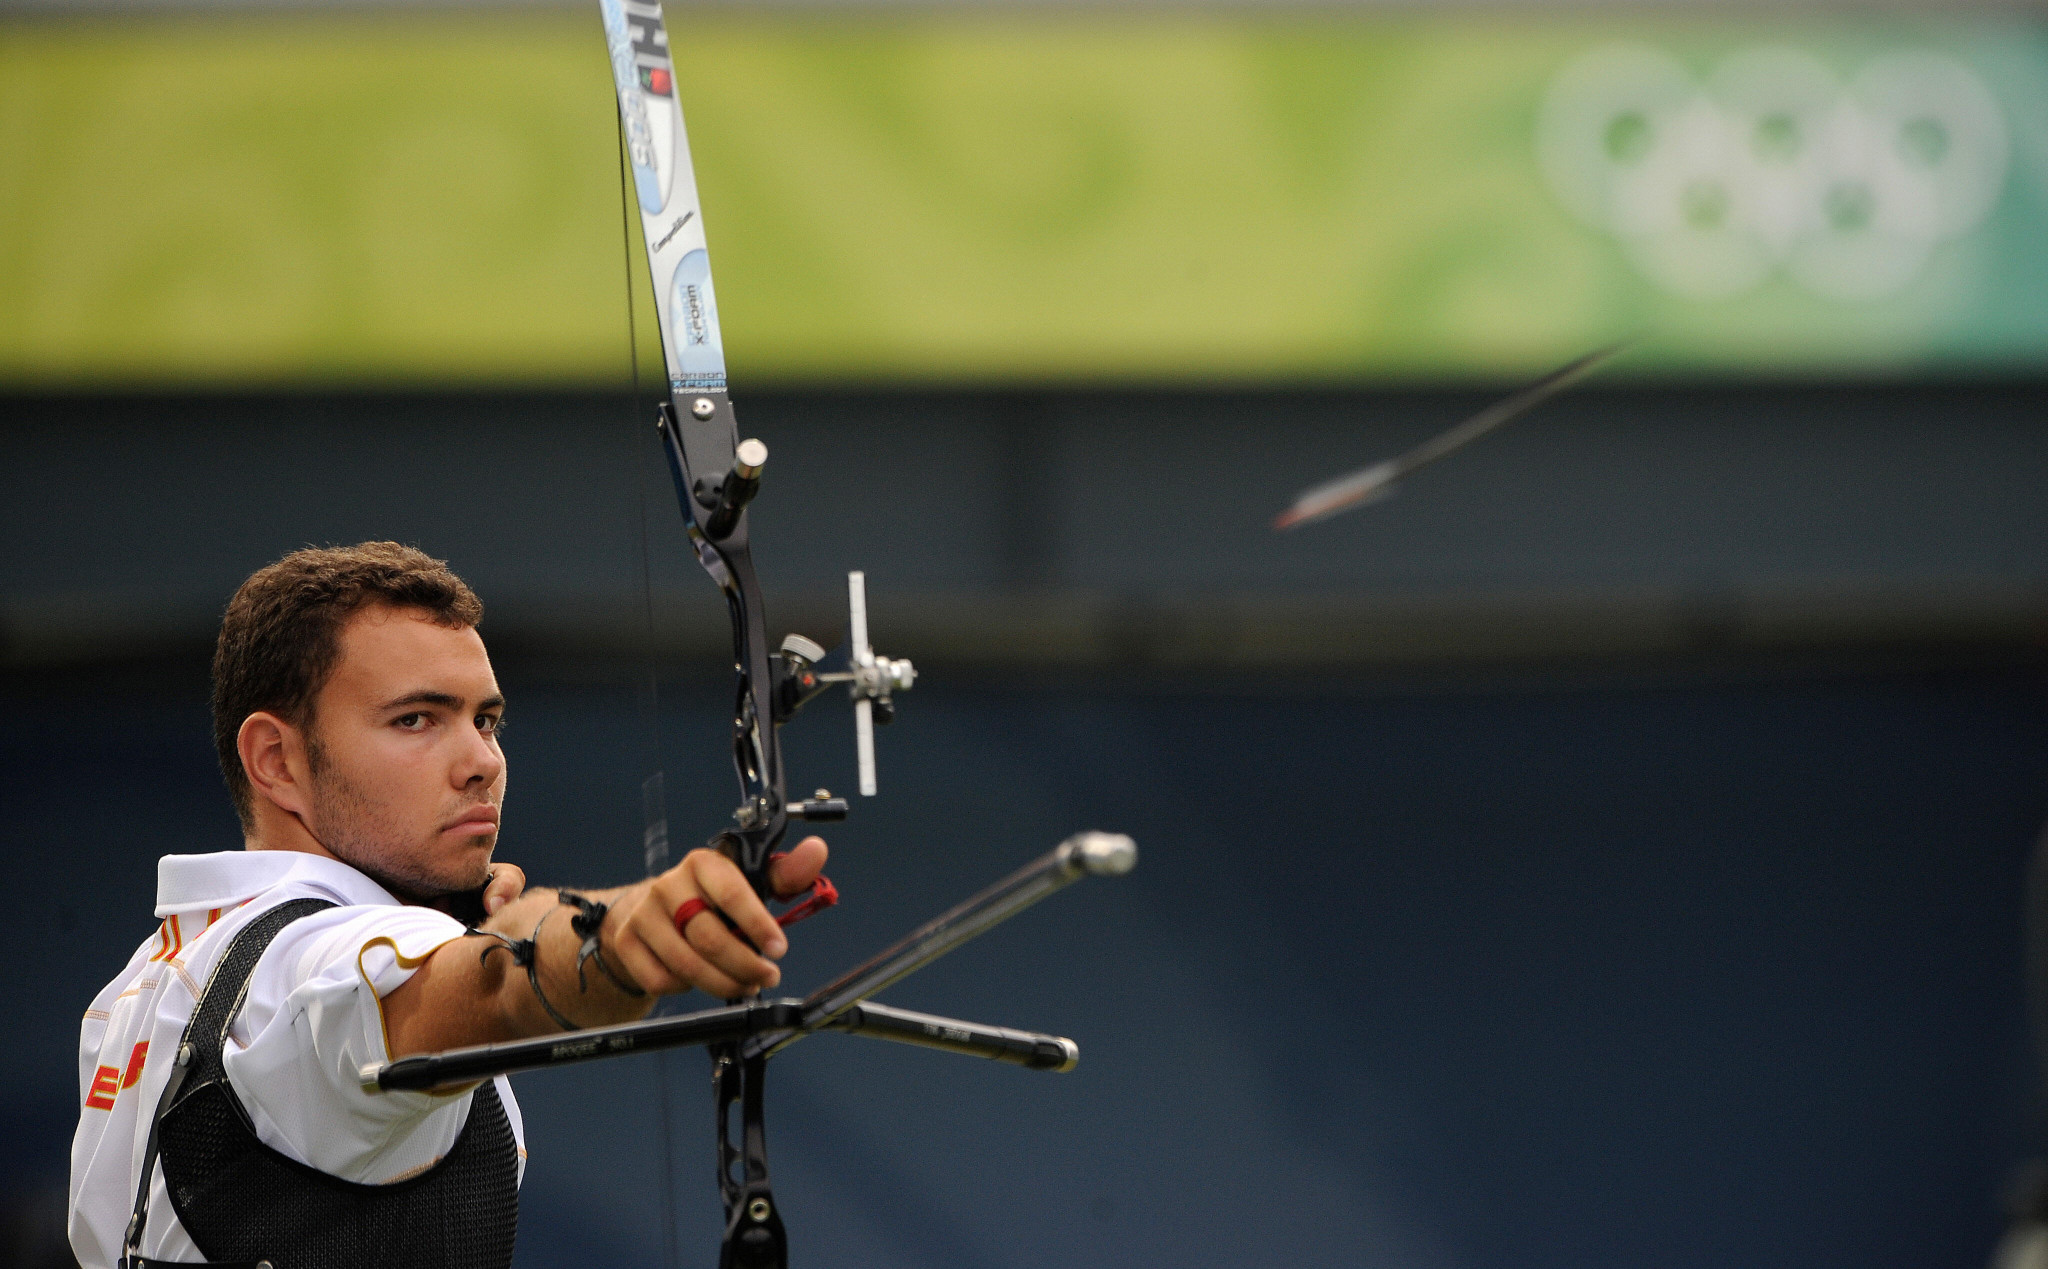 Daniel Morillo was part of the Spain team that won gold in the men's team category at the European Field Archery Championships  ©Getty Images